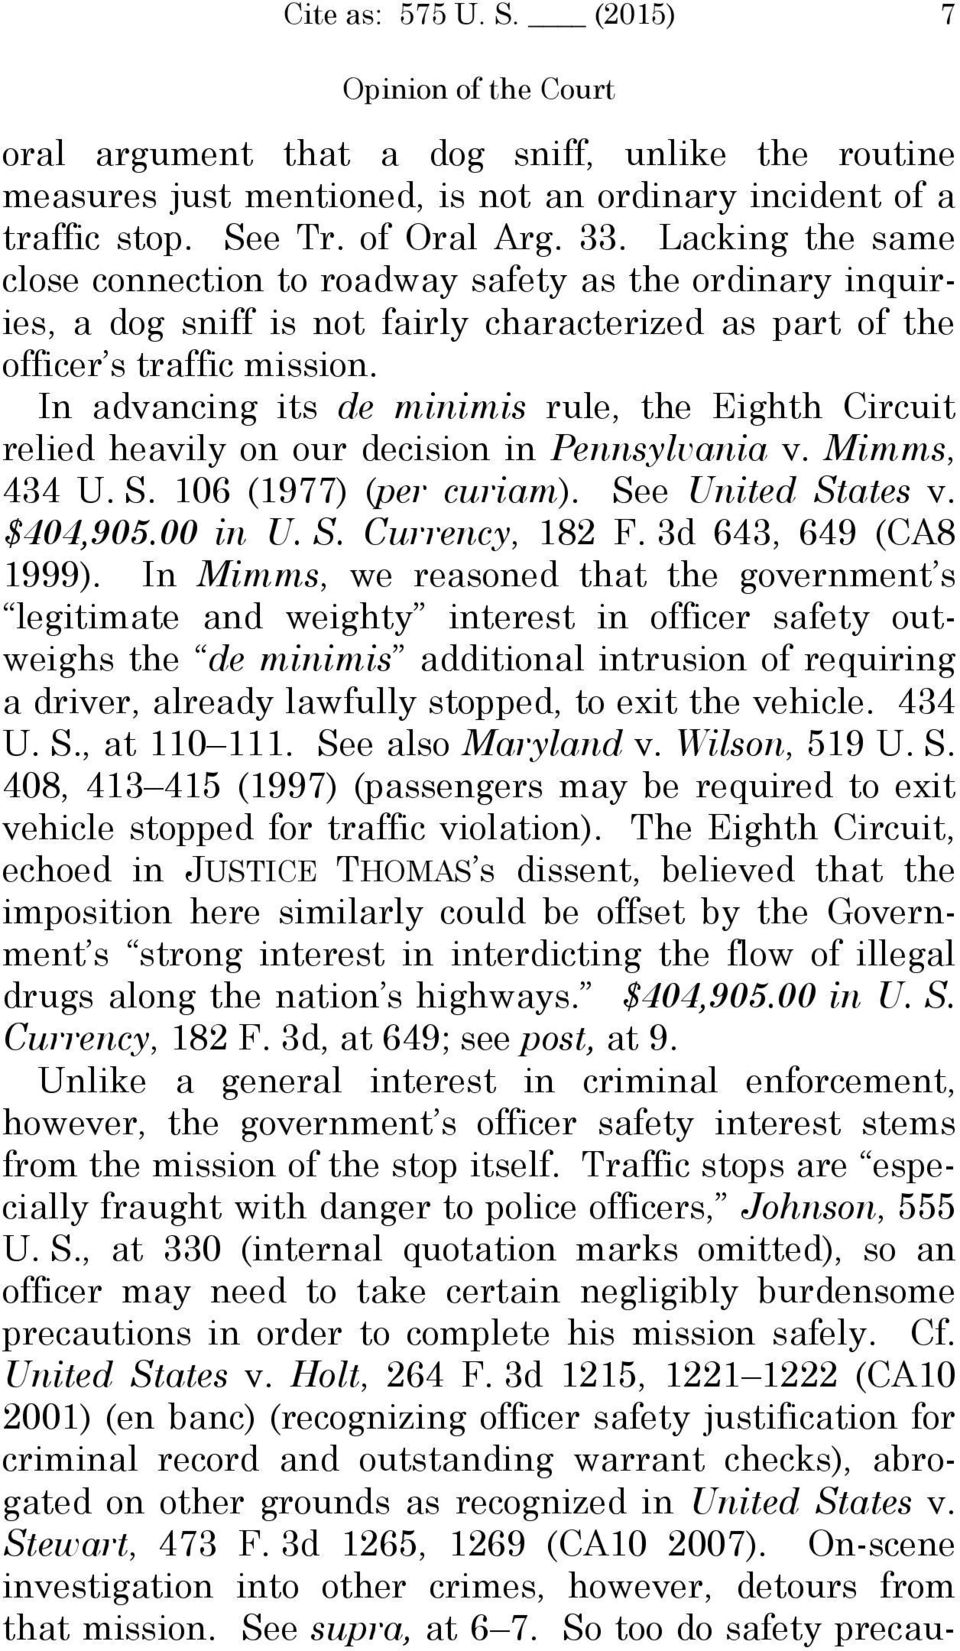 In advancing its de minimis rule, the Eighth Circuit relied heavily on our decision in Pennsylvania v. Mimms, 434 U. S. 106 (1977) (per curiam). See United States v. $404,905.00 in U. S. Currency, 182 F.